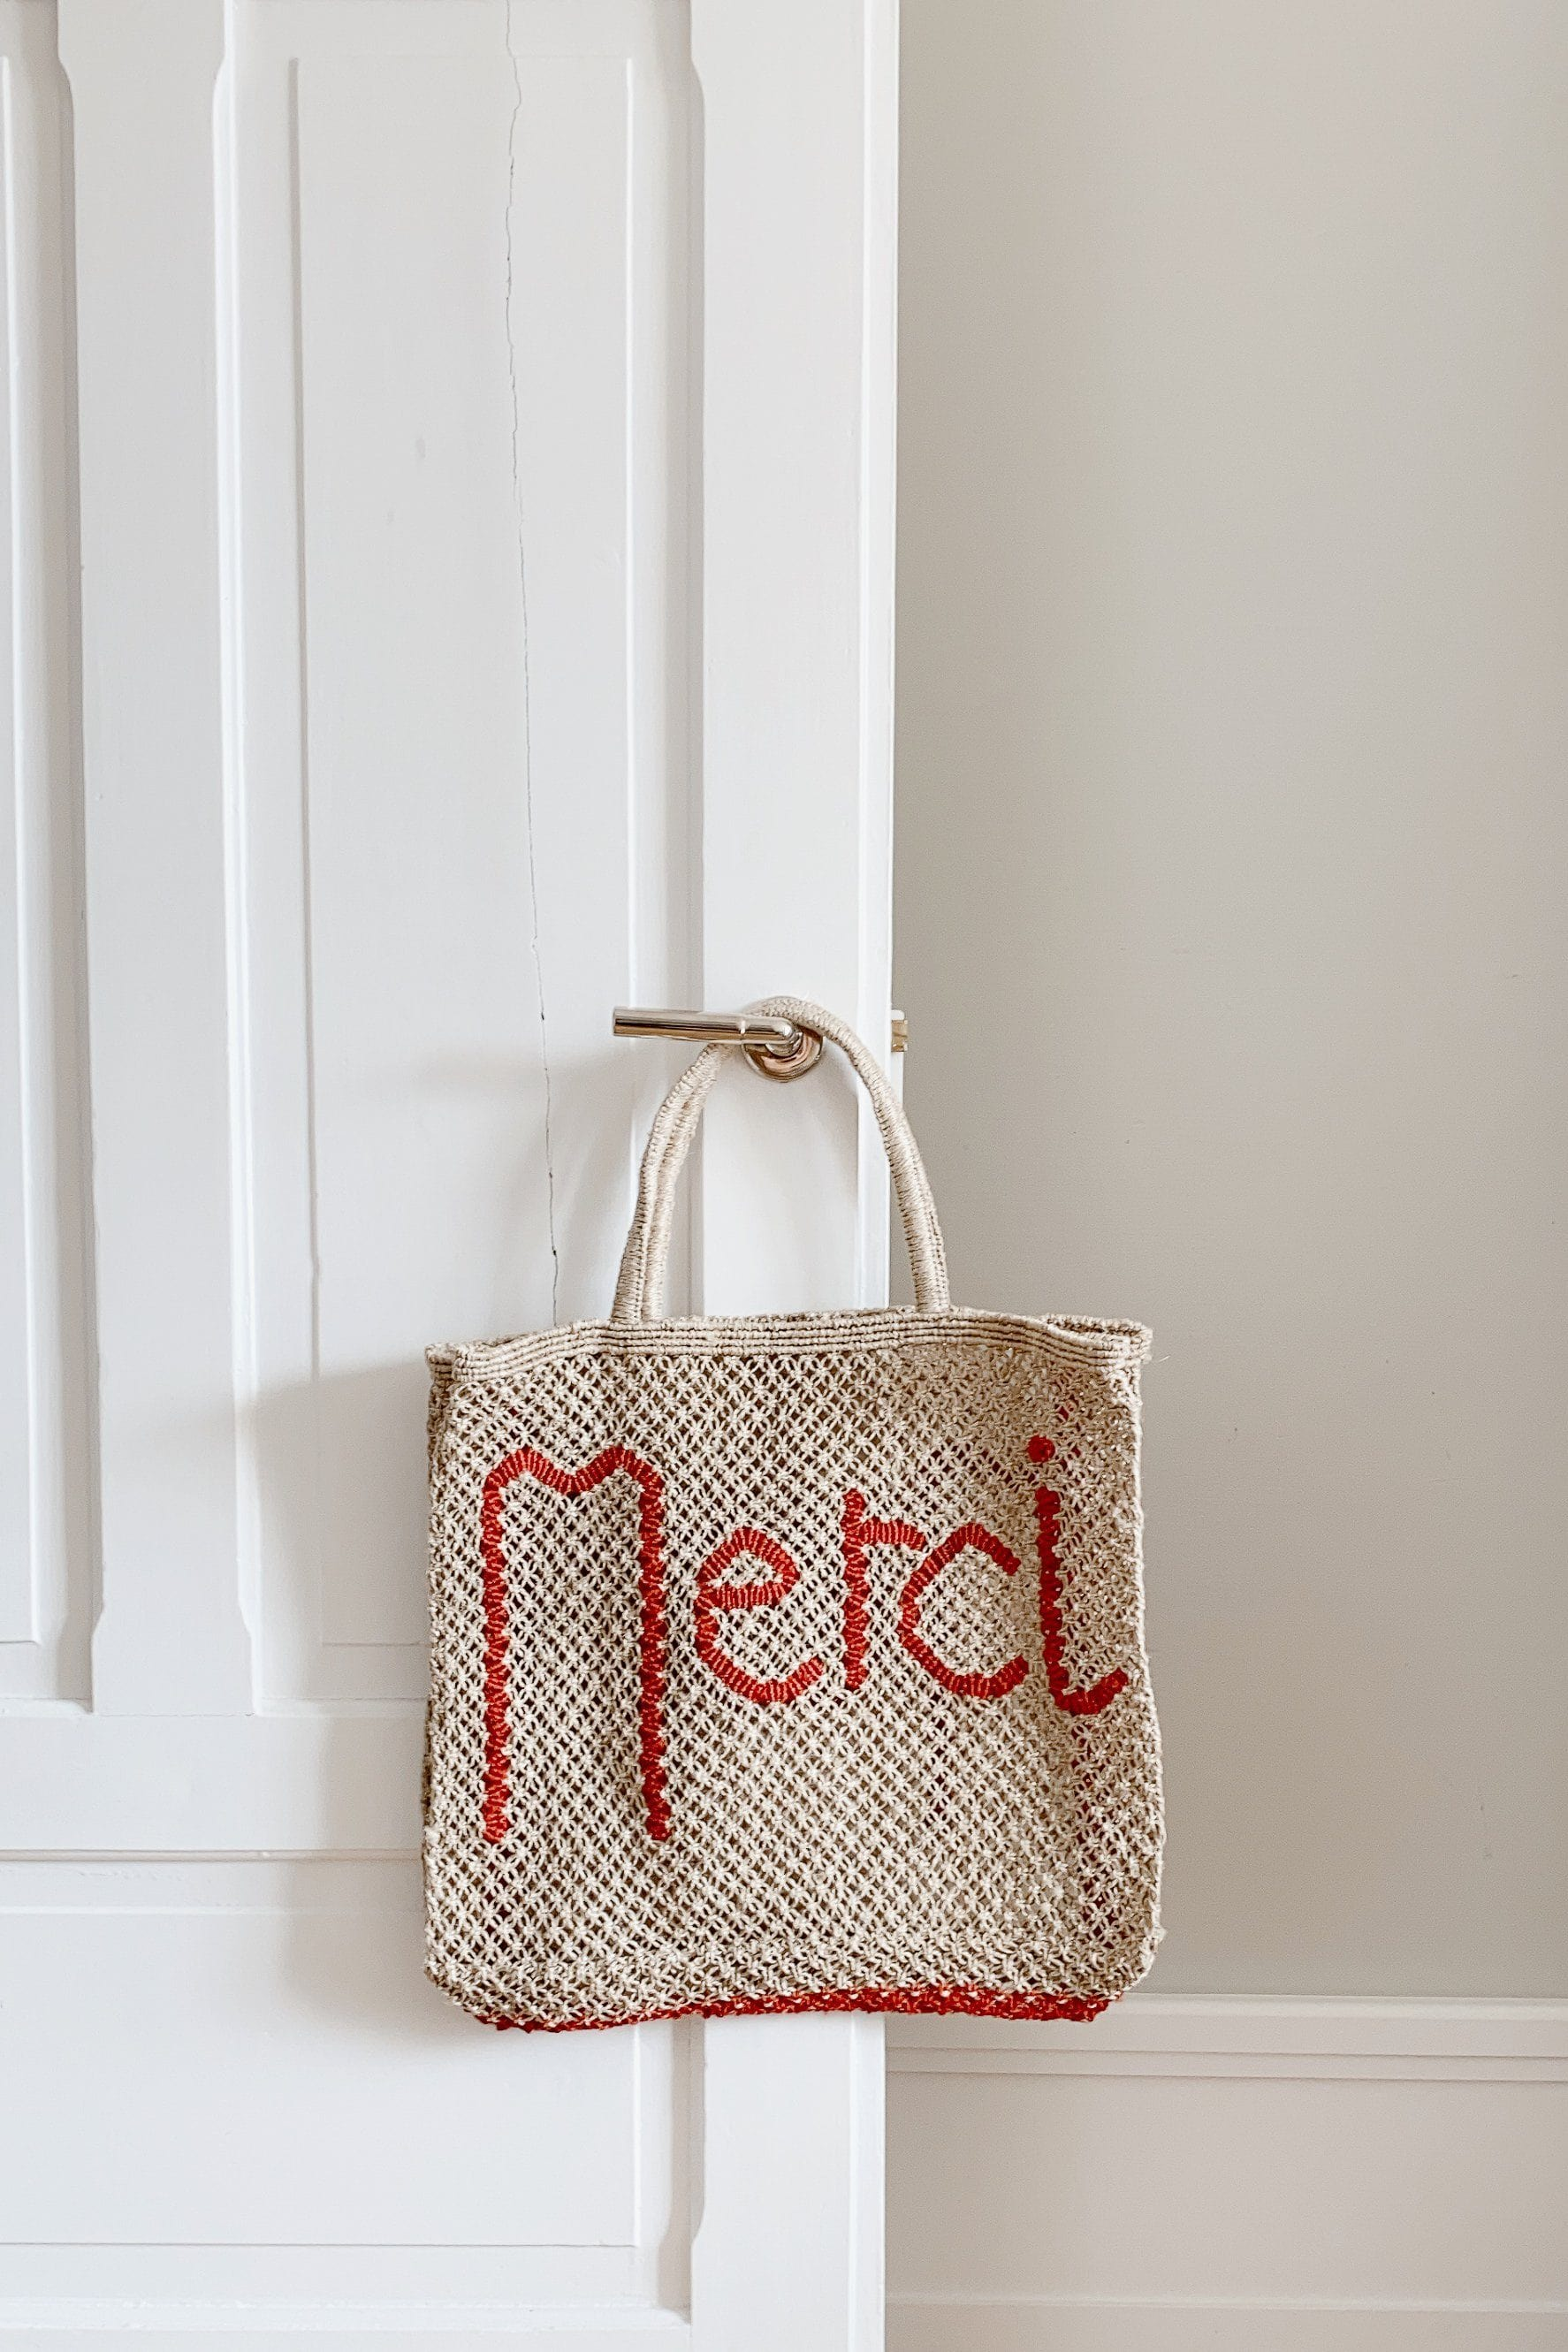 Merci handcrafted bag - The Jacksons